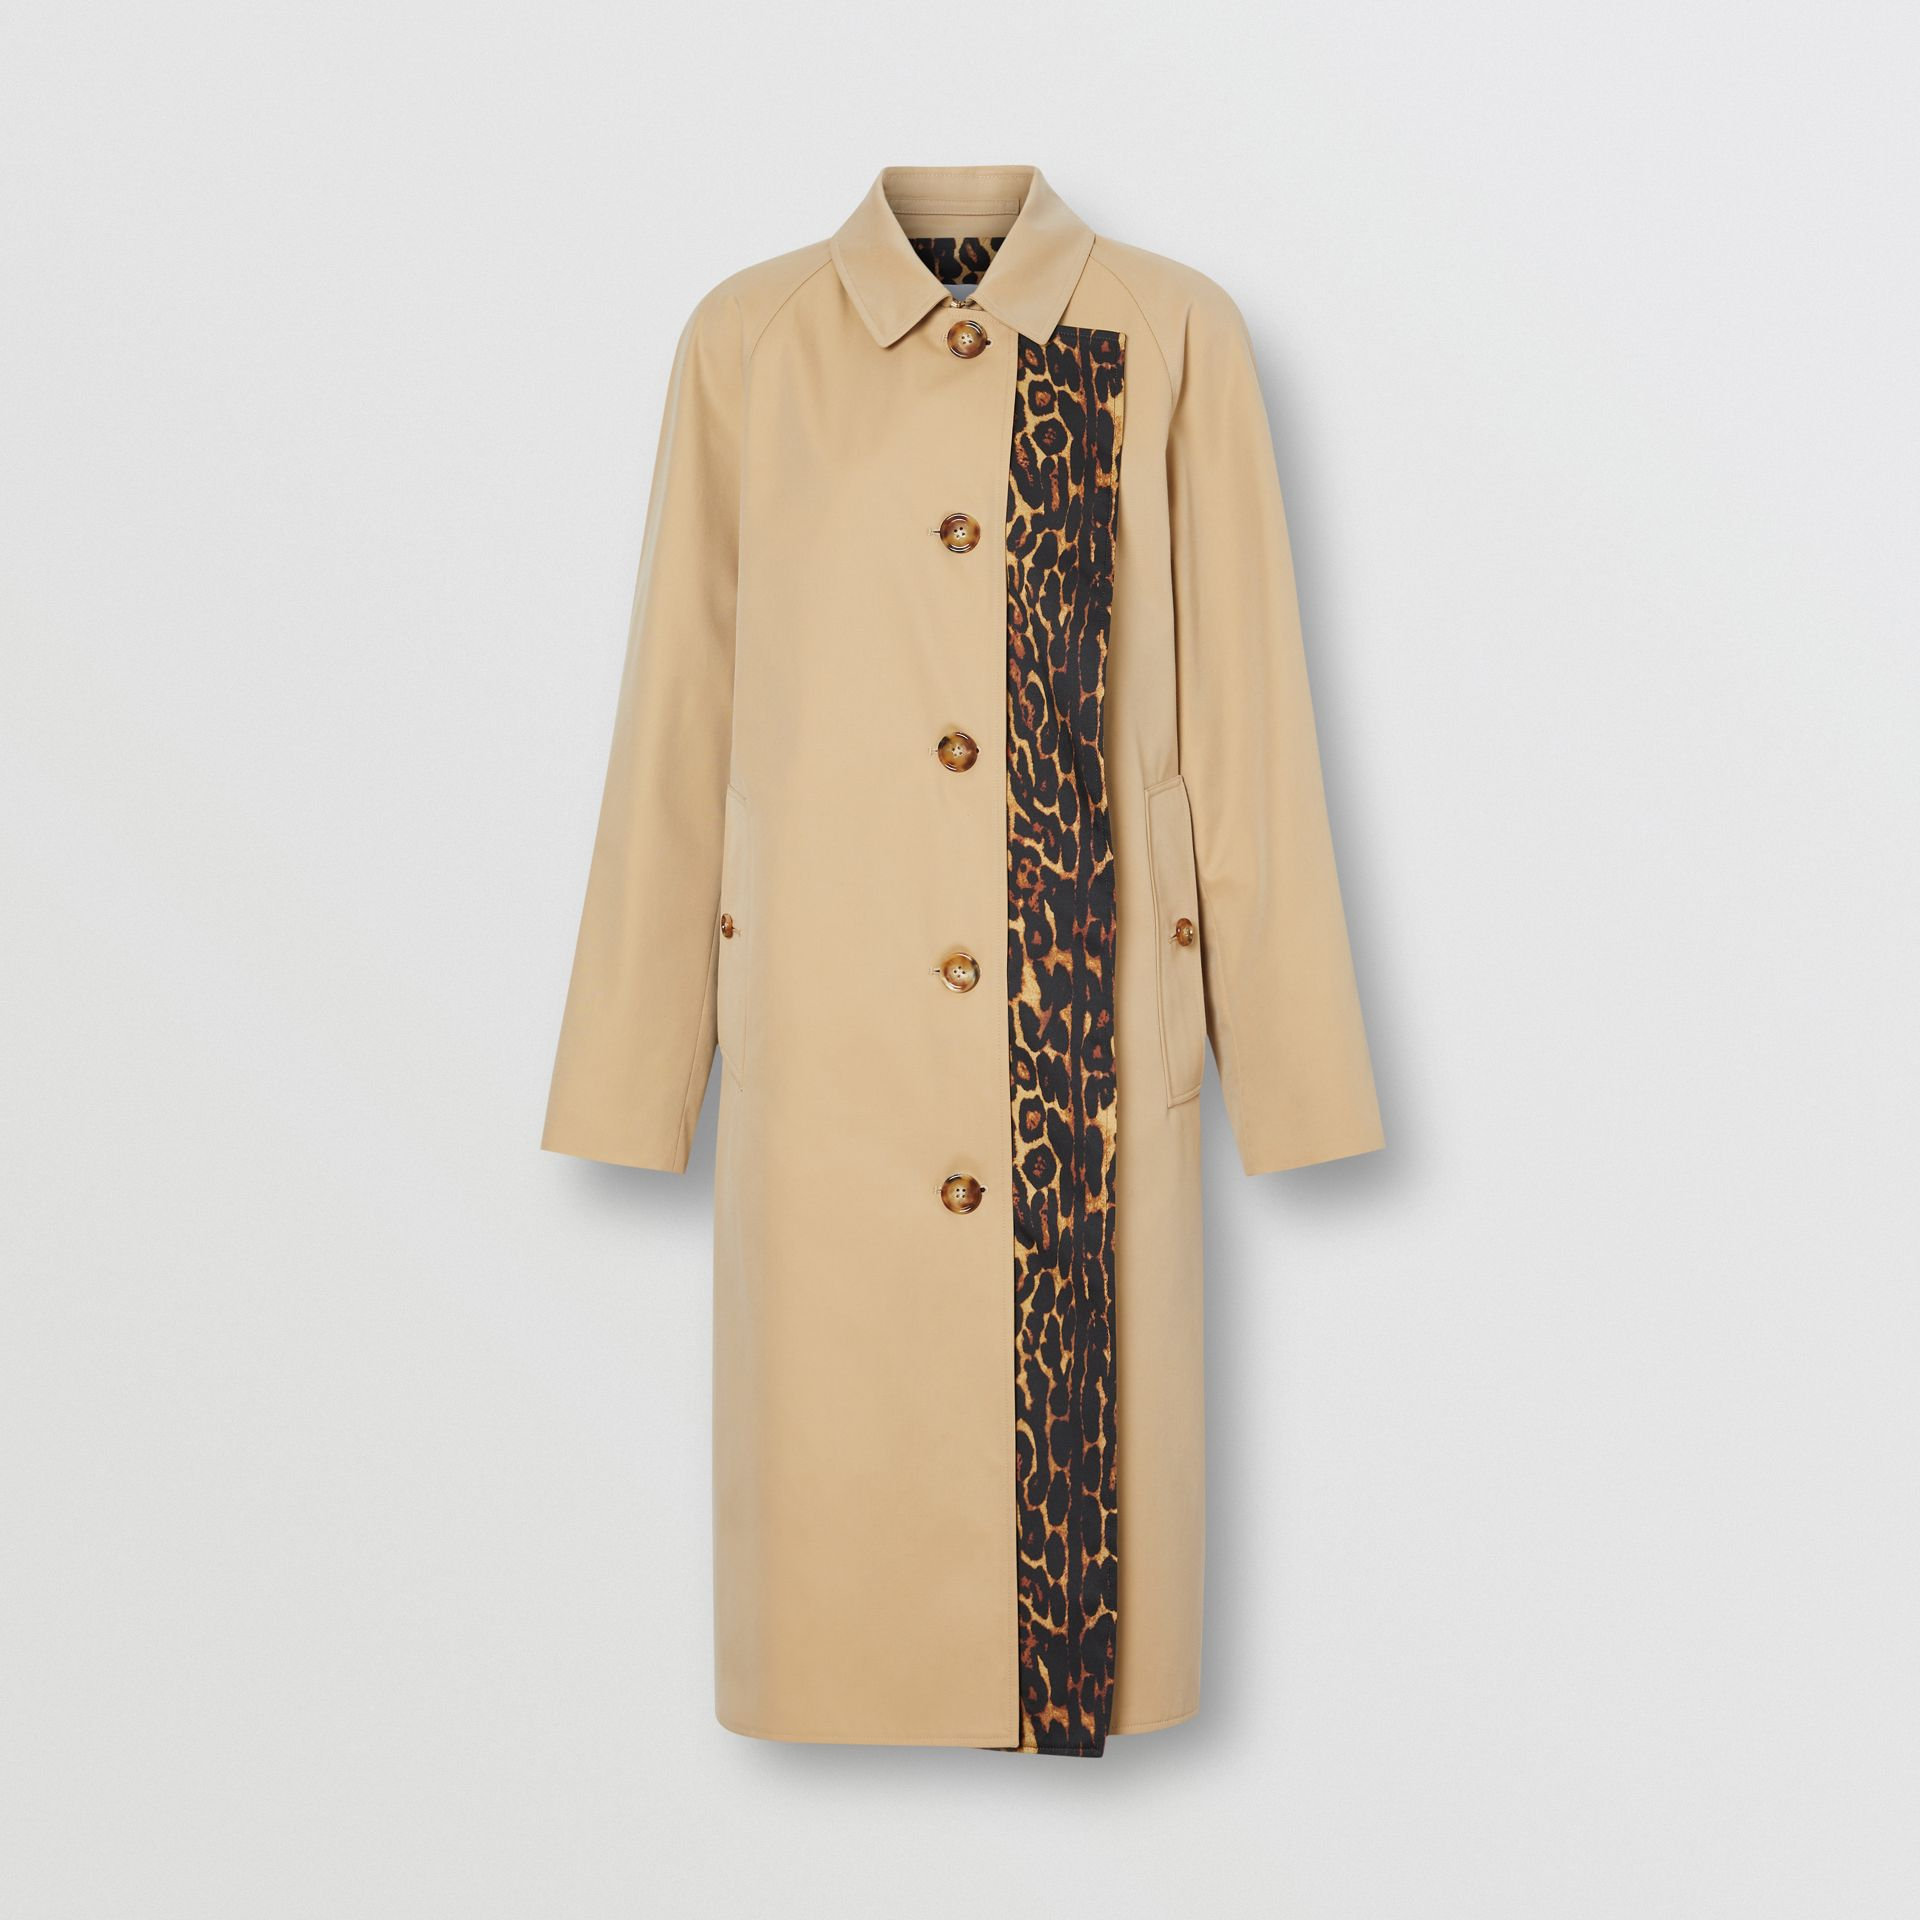 Leopard Print-lined Cotton Gabardine Car Coat in Honey - Women | Burberry Australia - gallery image 8